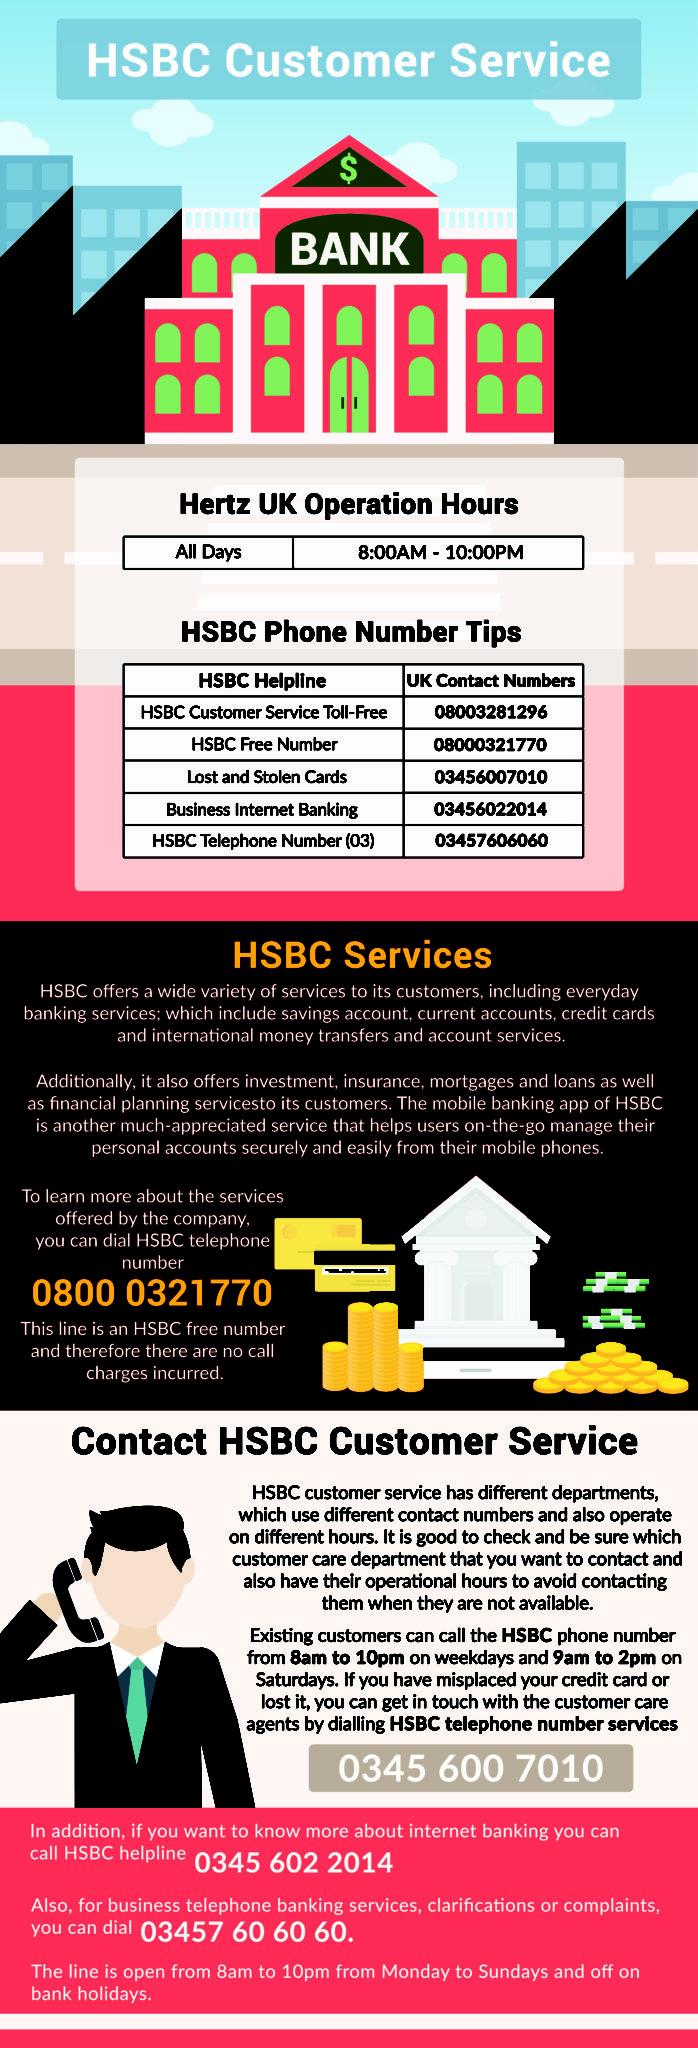 At Last, The Secret To HSBC Customer Service Is Revealed! Call:0844